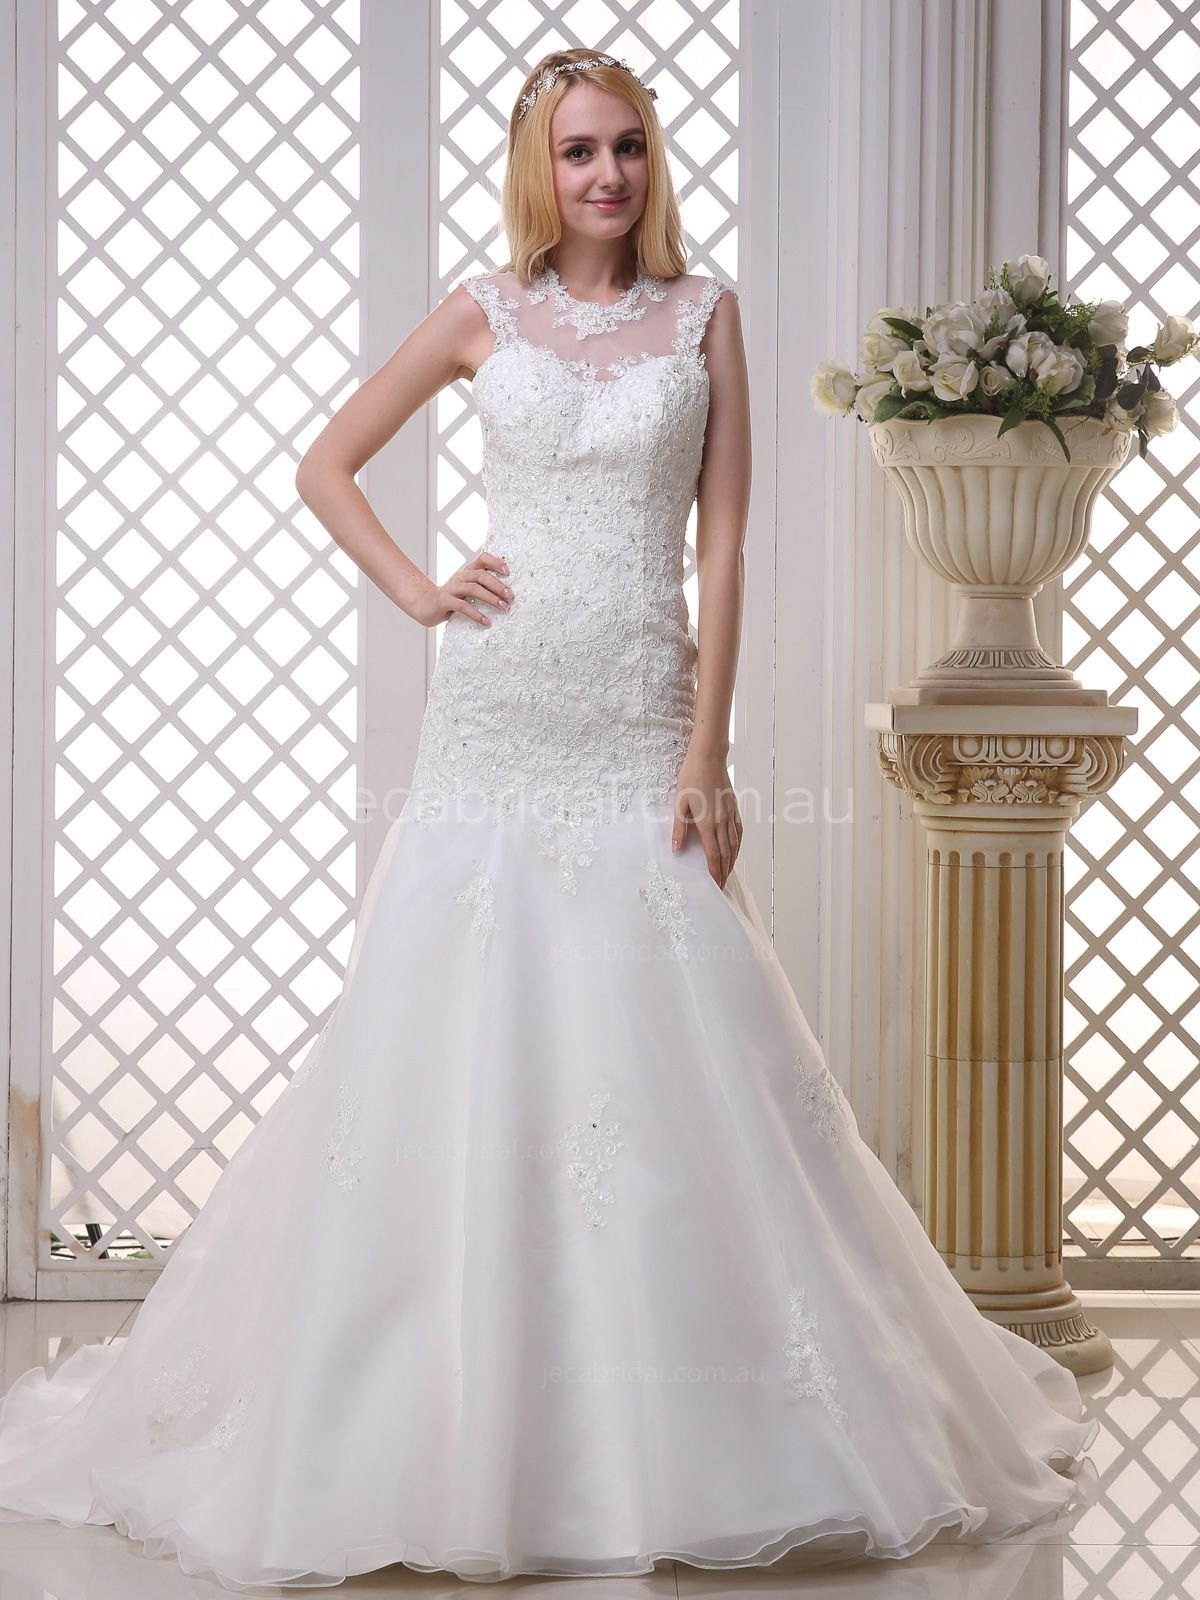 Illusion round neckline fit and flare wedding dress vintage inspired